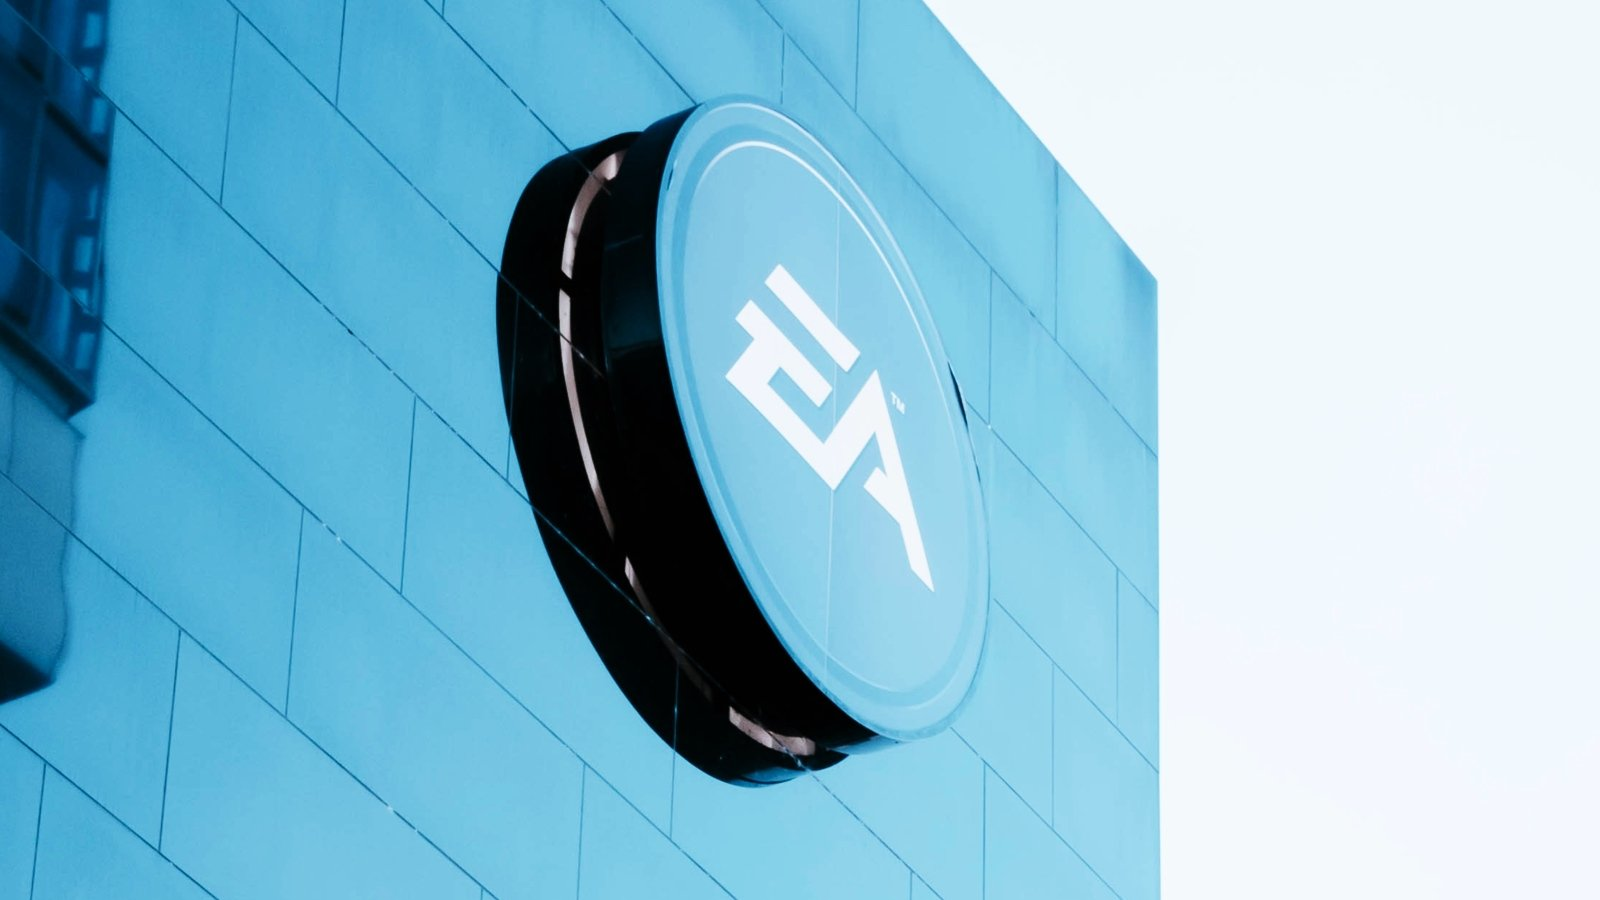 Hackers breach gaming giant Electronic Arts, steal game source code